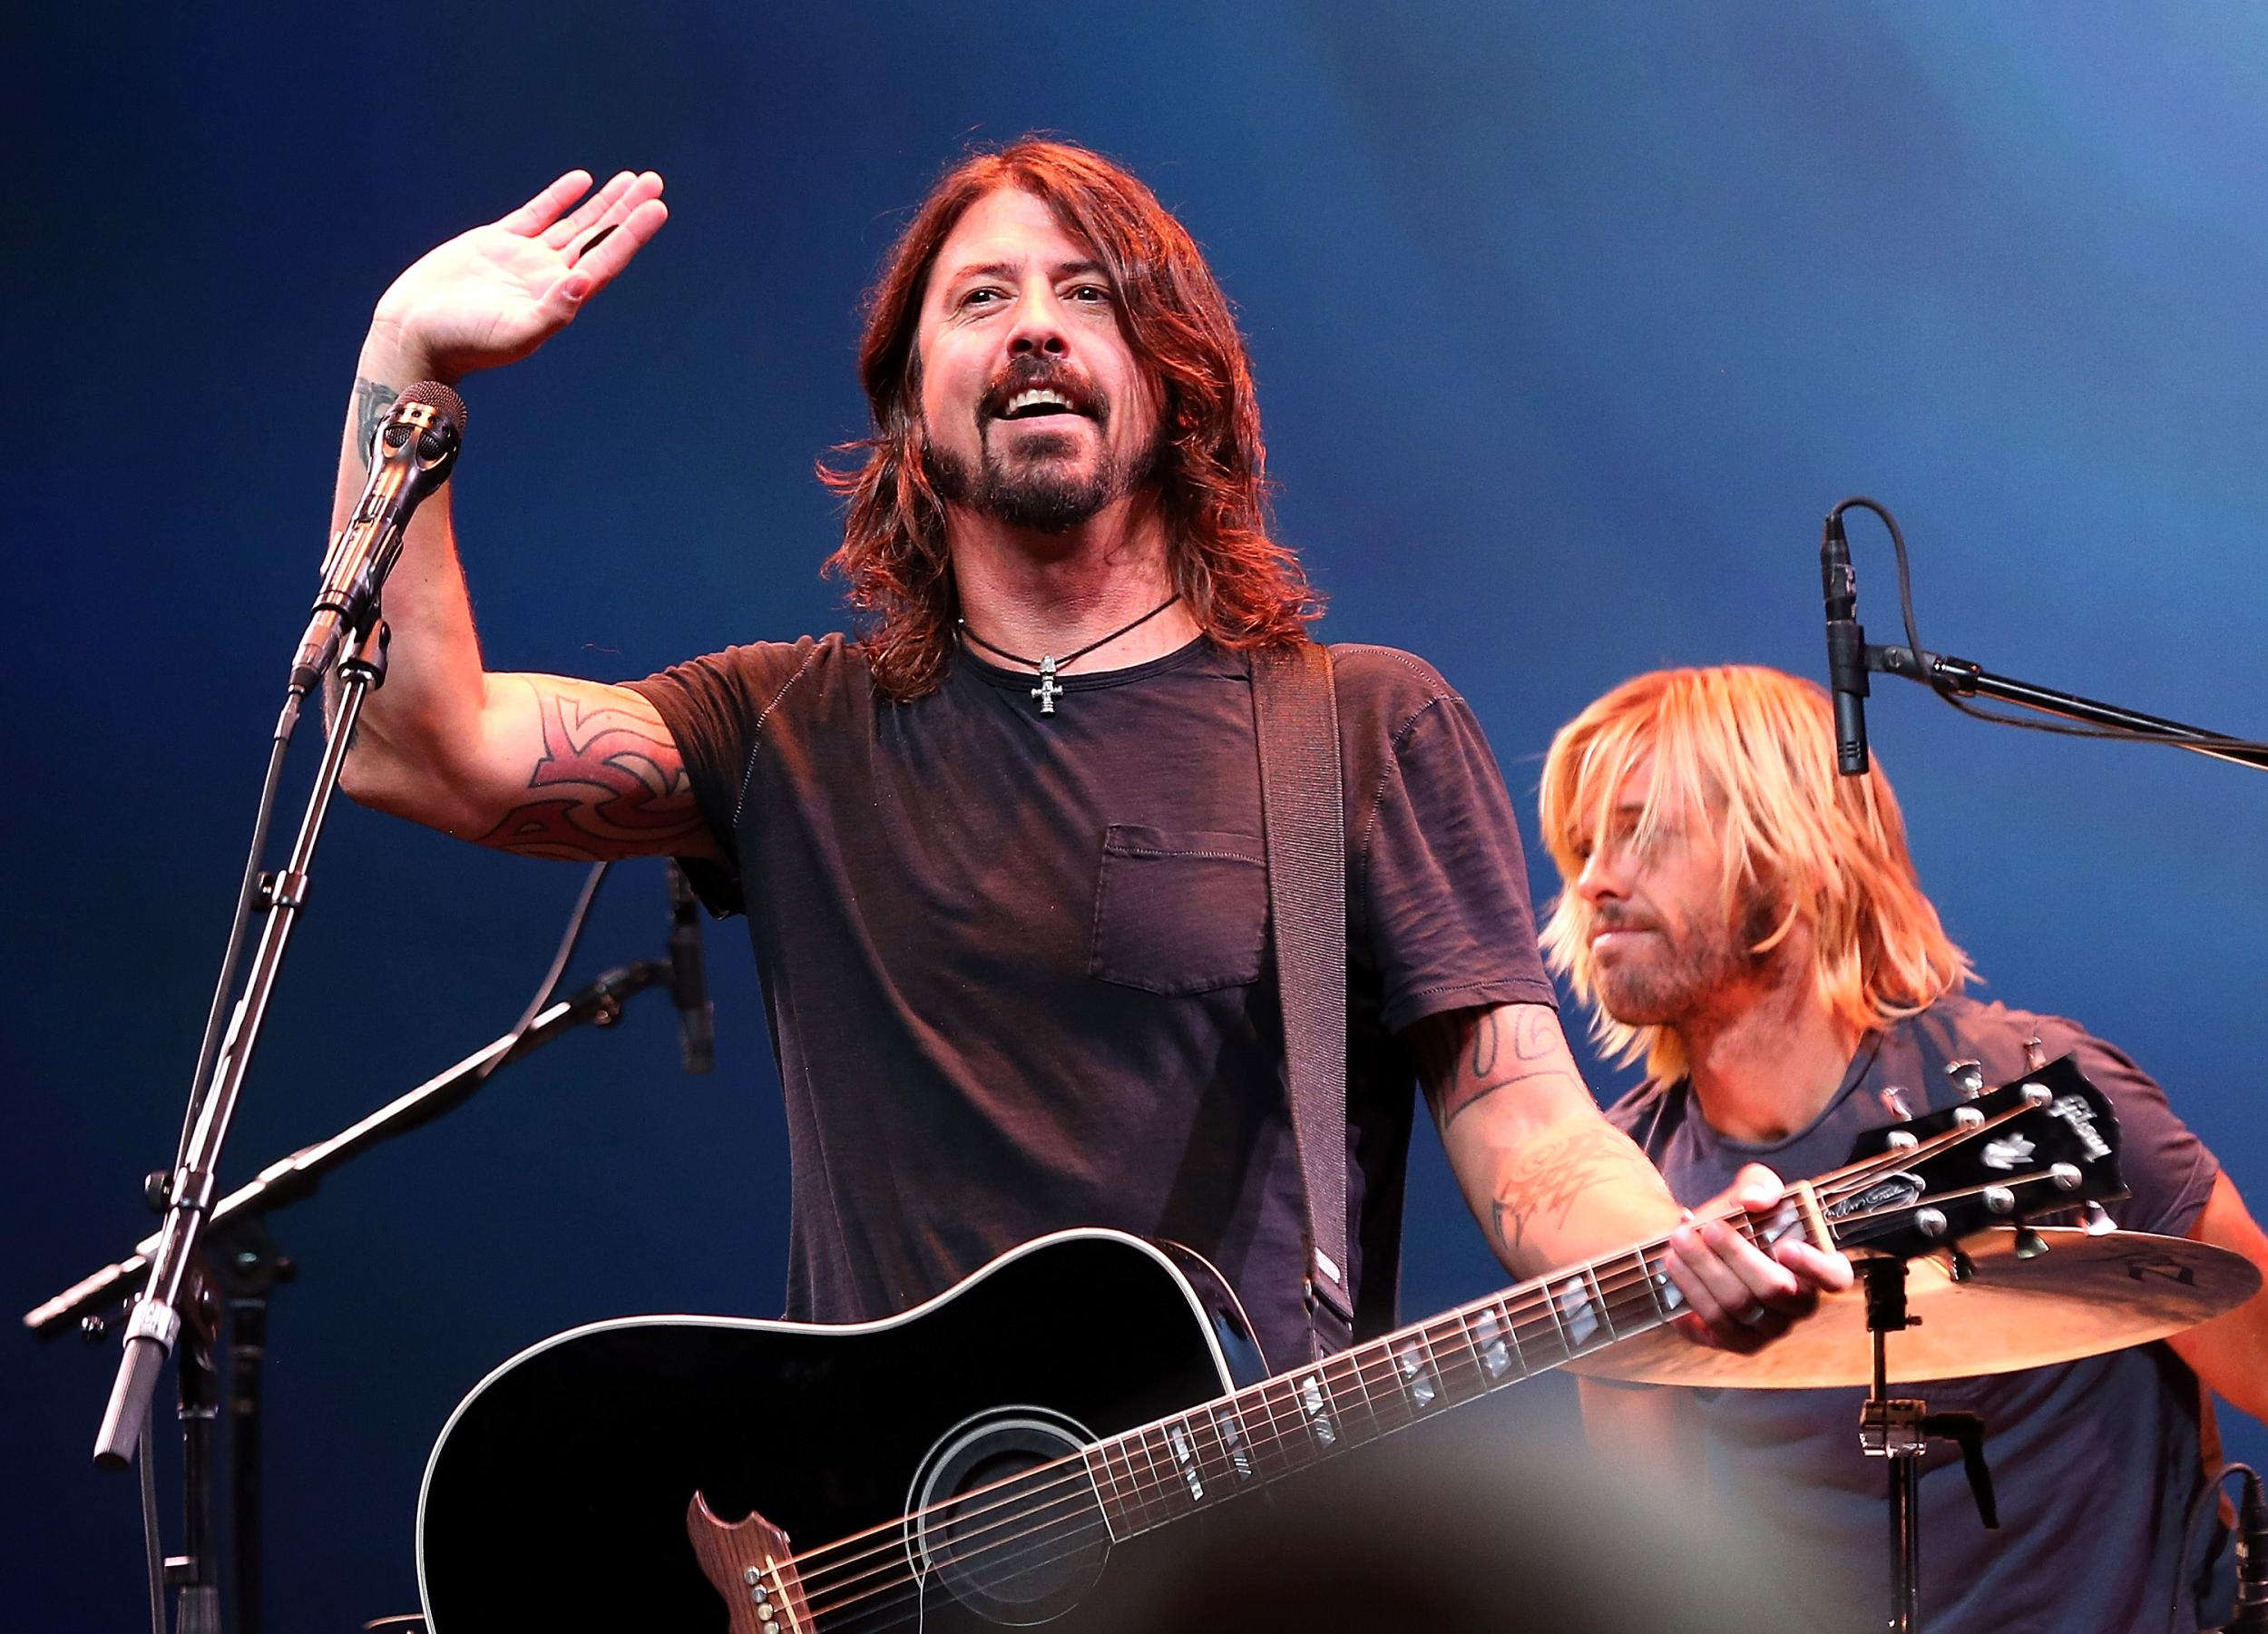 Dave Grohl invites five-year-old Foo Fighters fan onstage to celebrate his first-ever gig